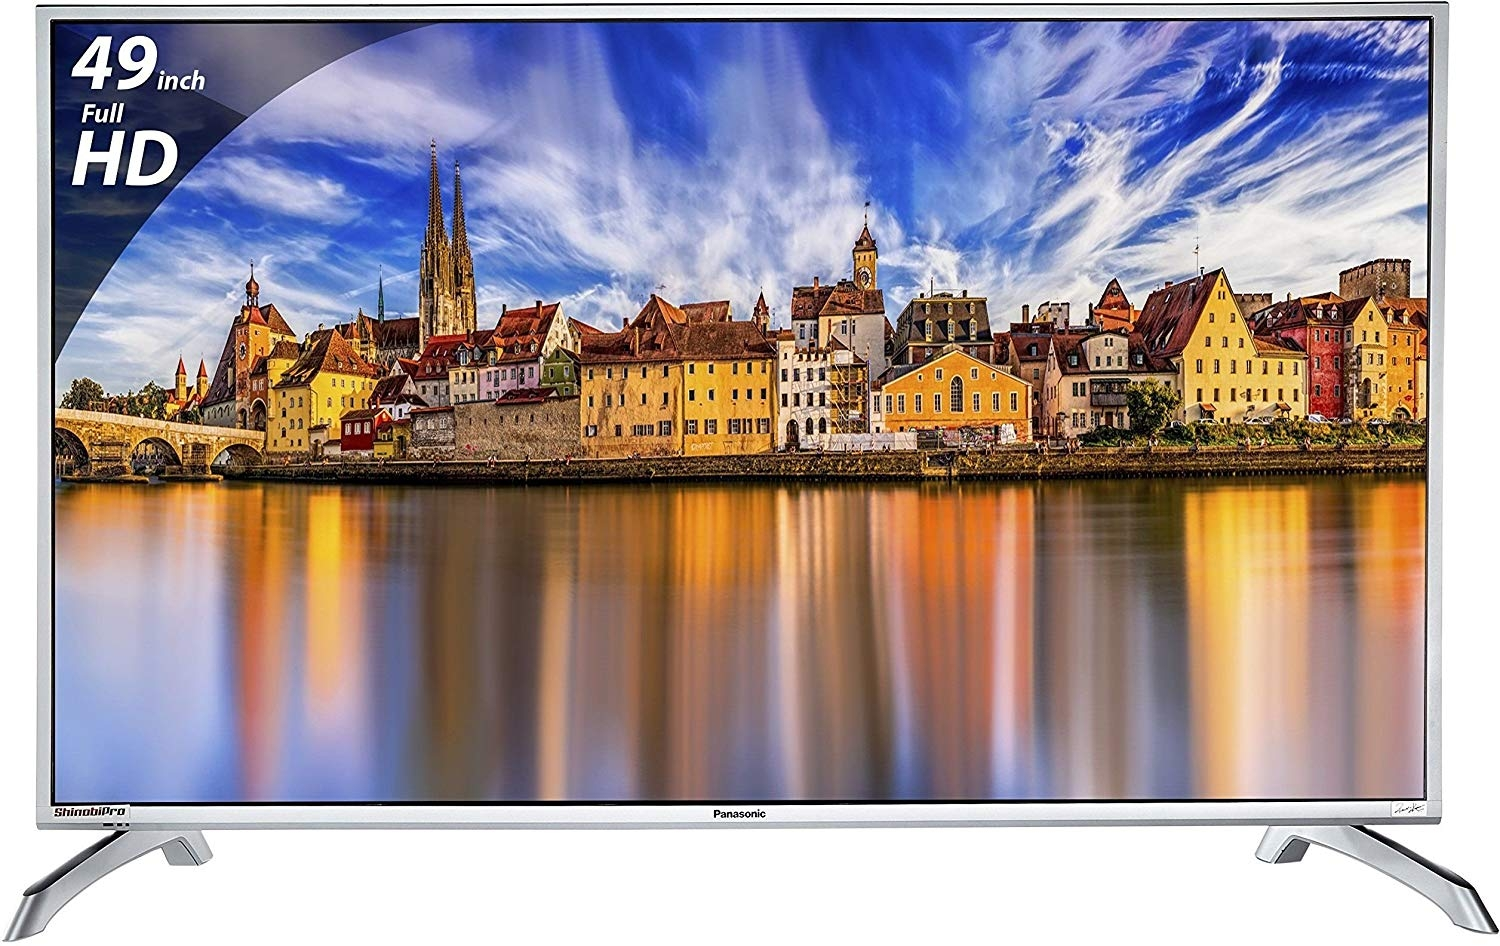 Panasonic 123 cm (49 inches) Viera Shinobi, Super Bright TH-49E460D Full HD LED TV